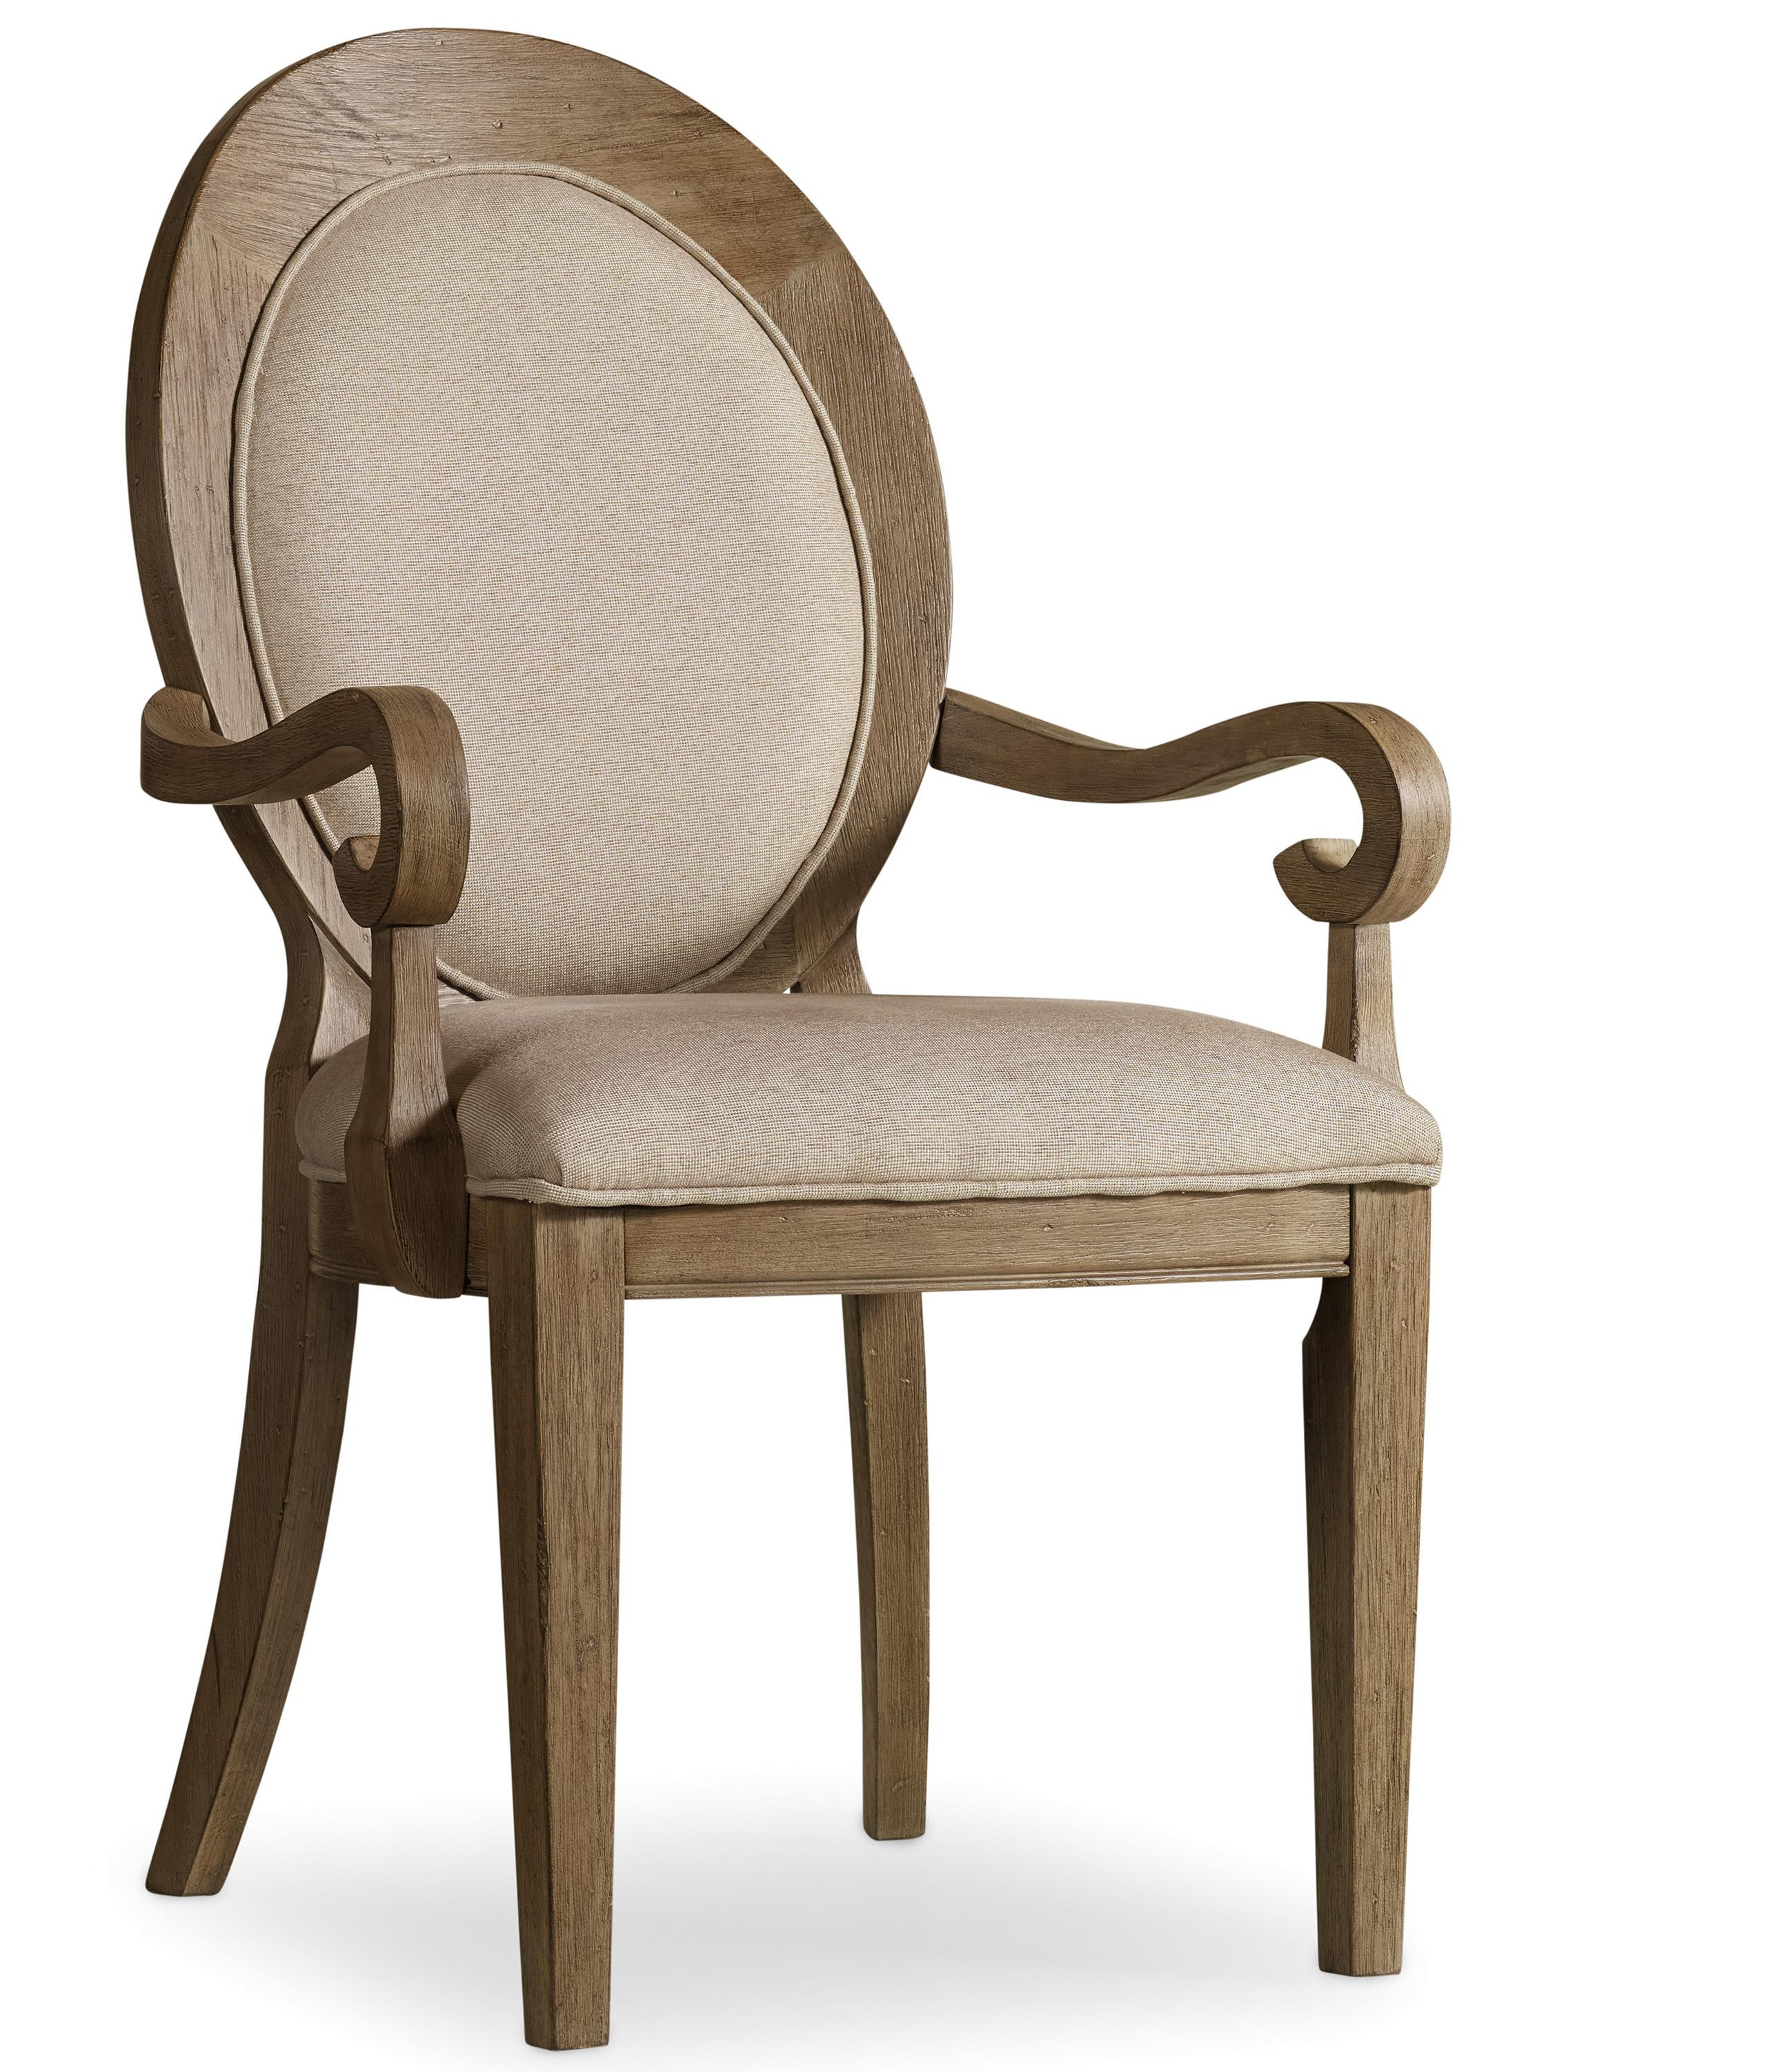 Hamilton Home Corsica Oval Back Arm Chair - Item Number: 5180-75402